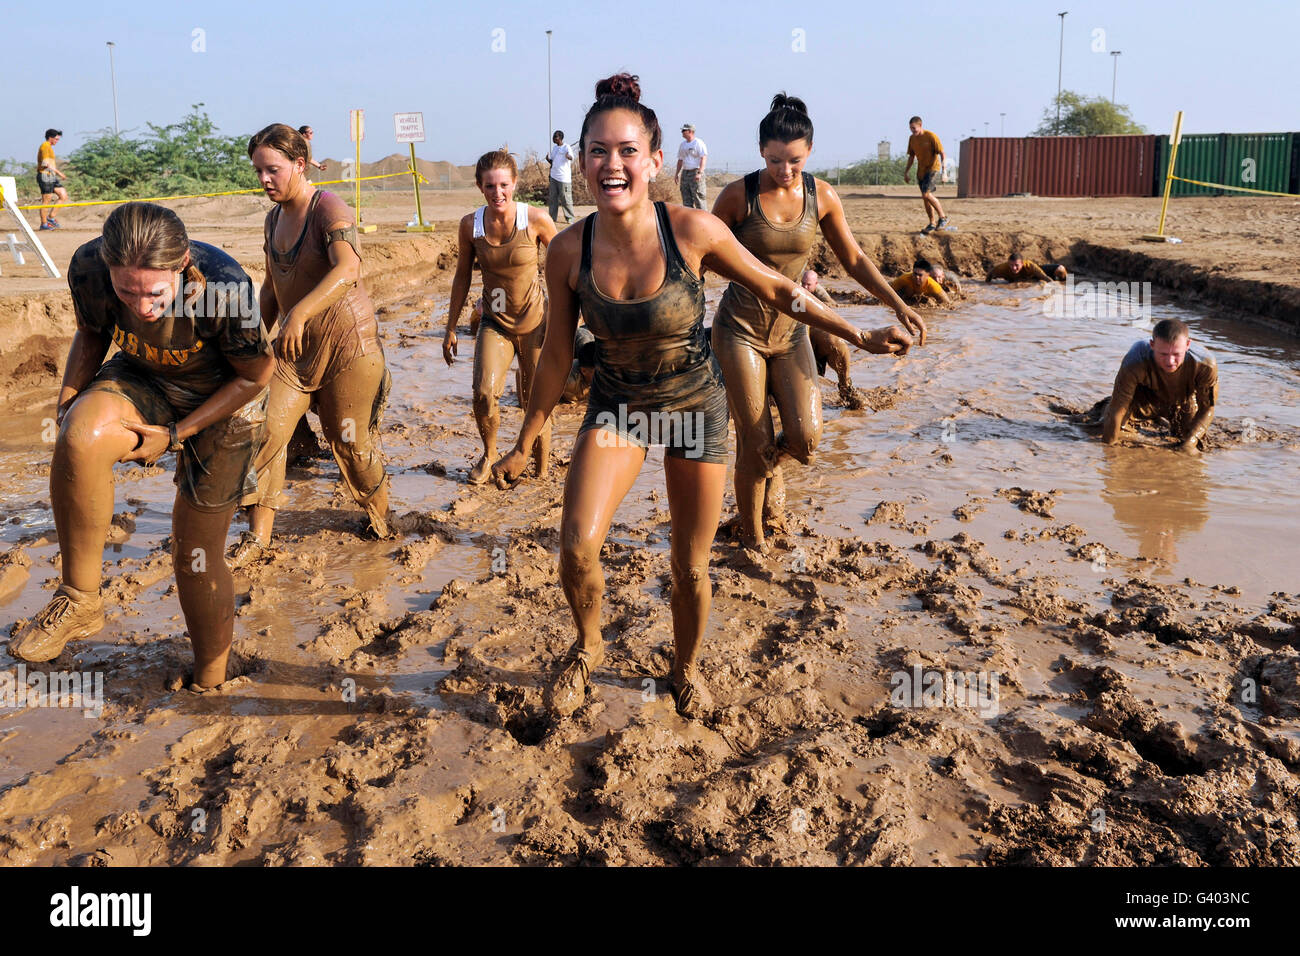 Competitors emerge from a mud pit at Camp Lemonnier, Djibouti. - Stock Image